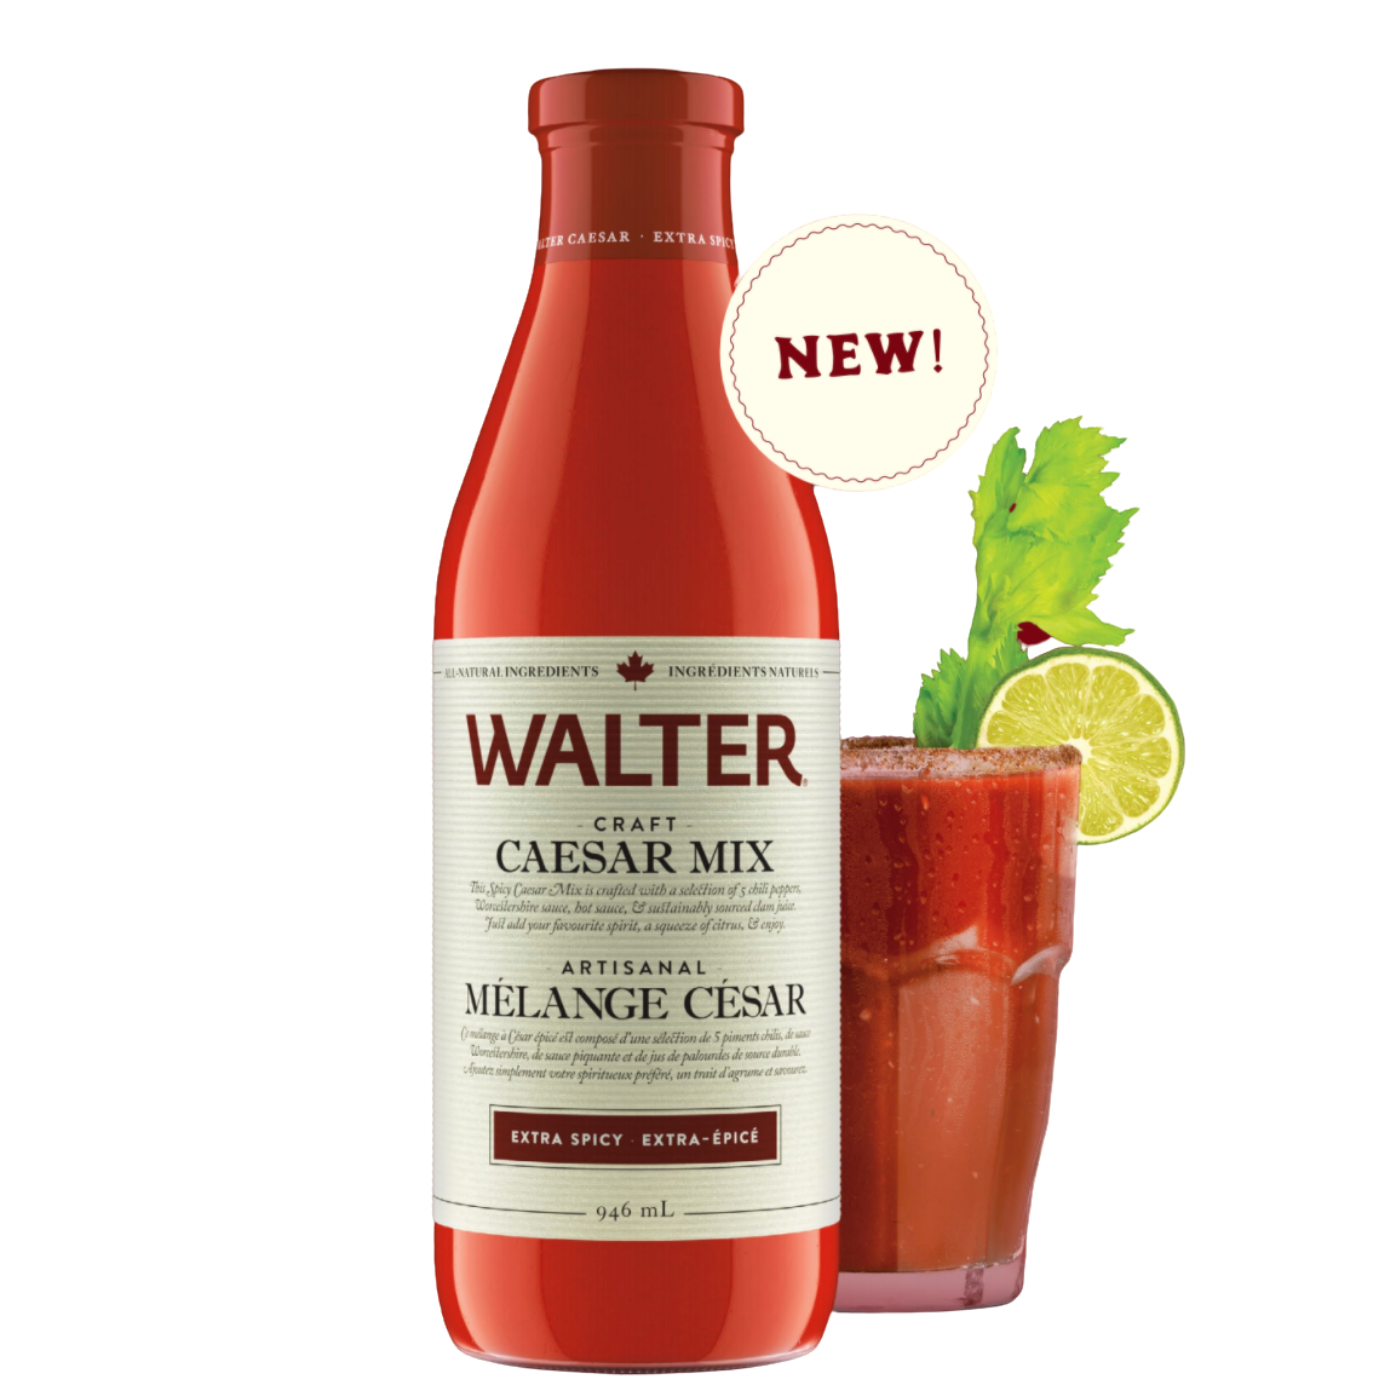 Walter All-Natural Craft Caesar Mix - Extra Spicy